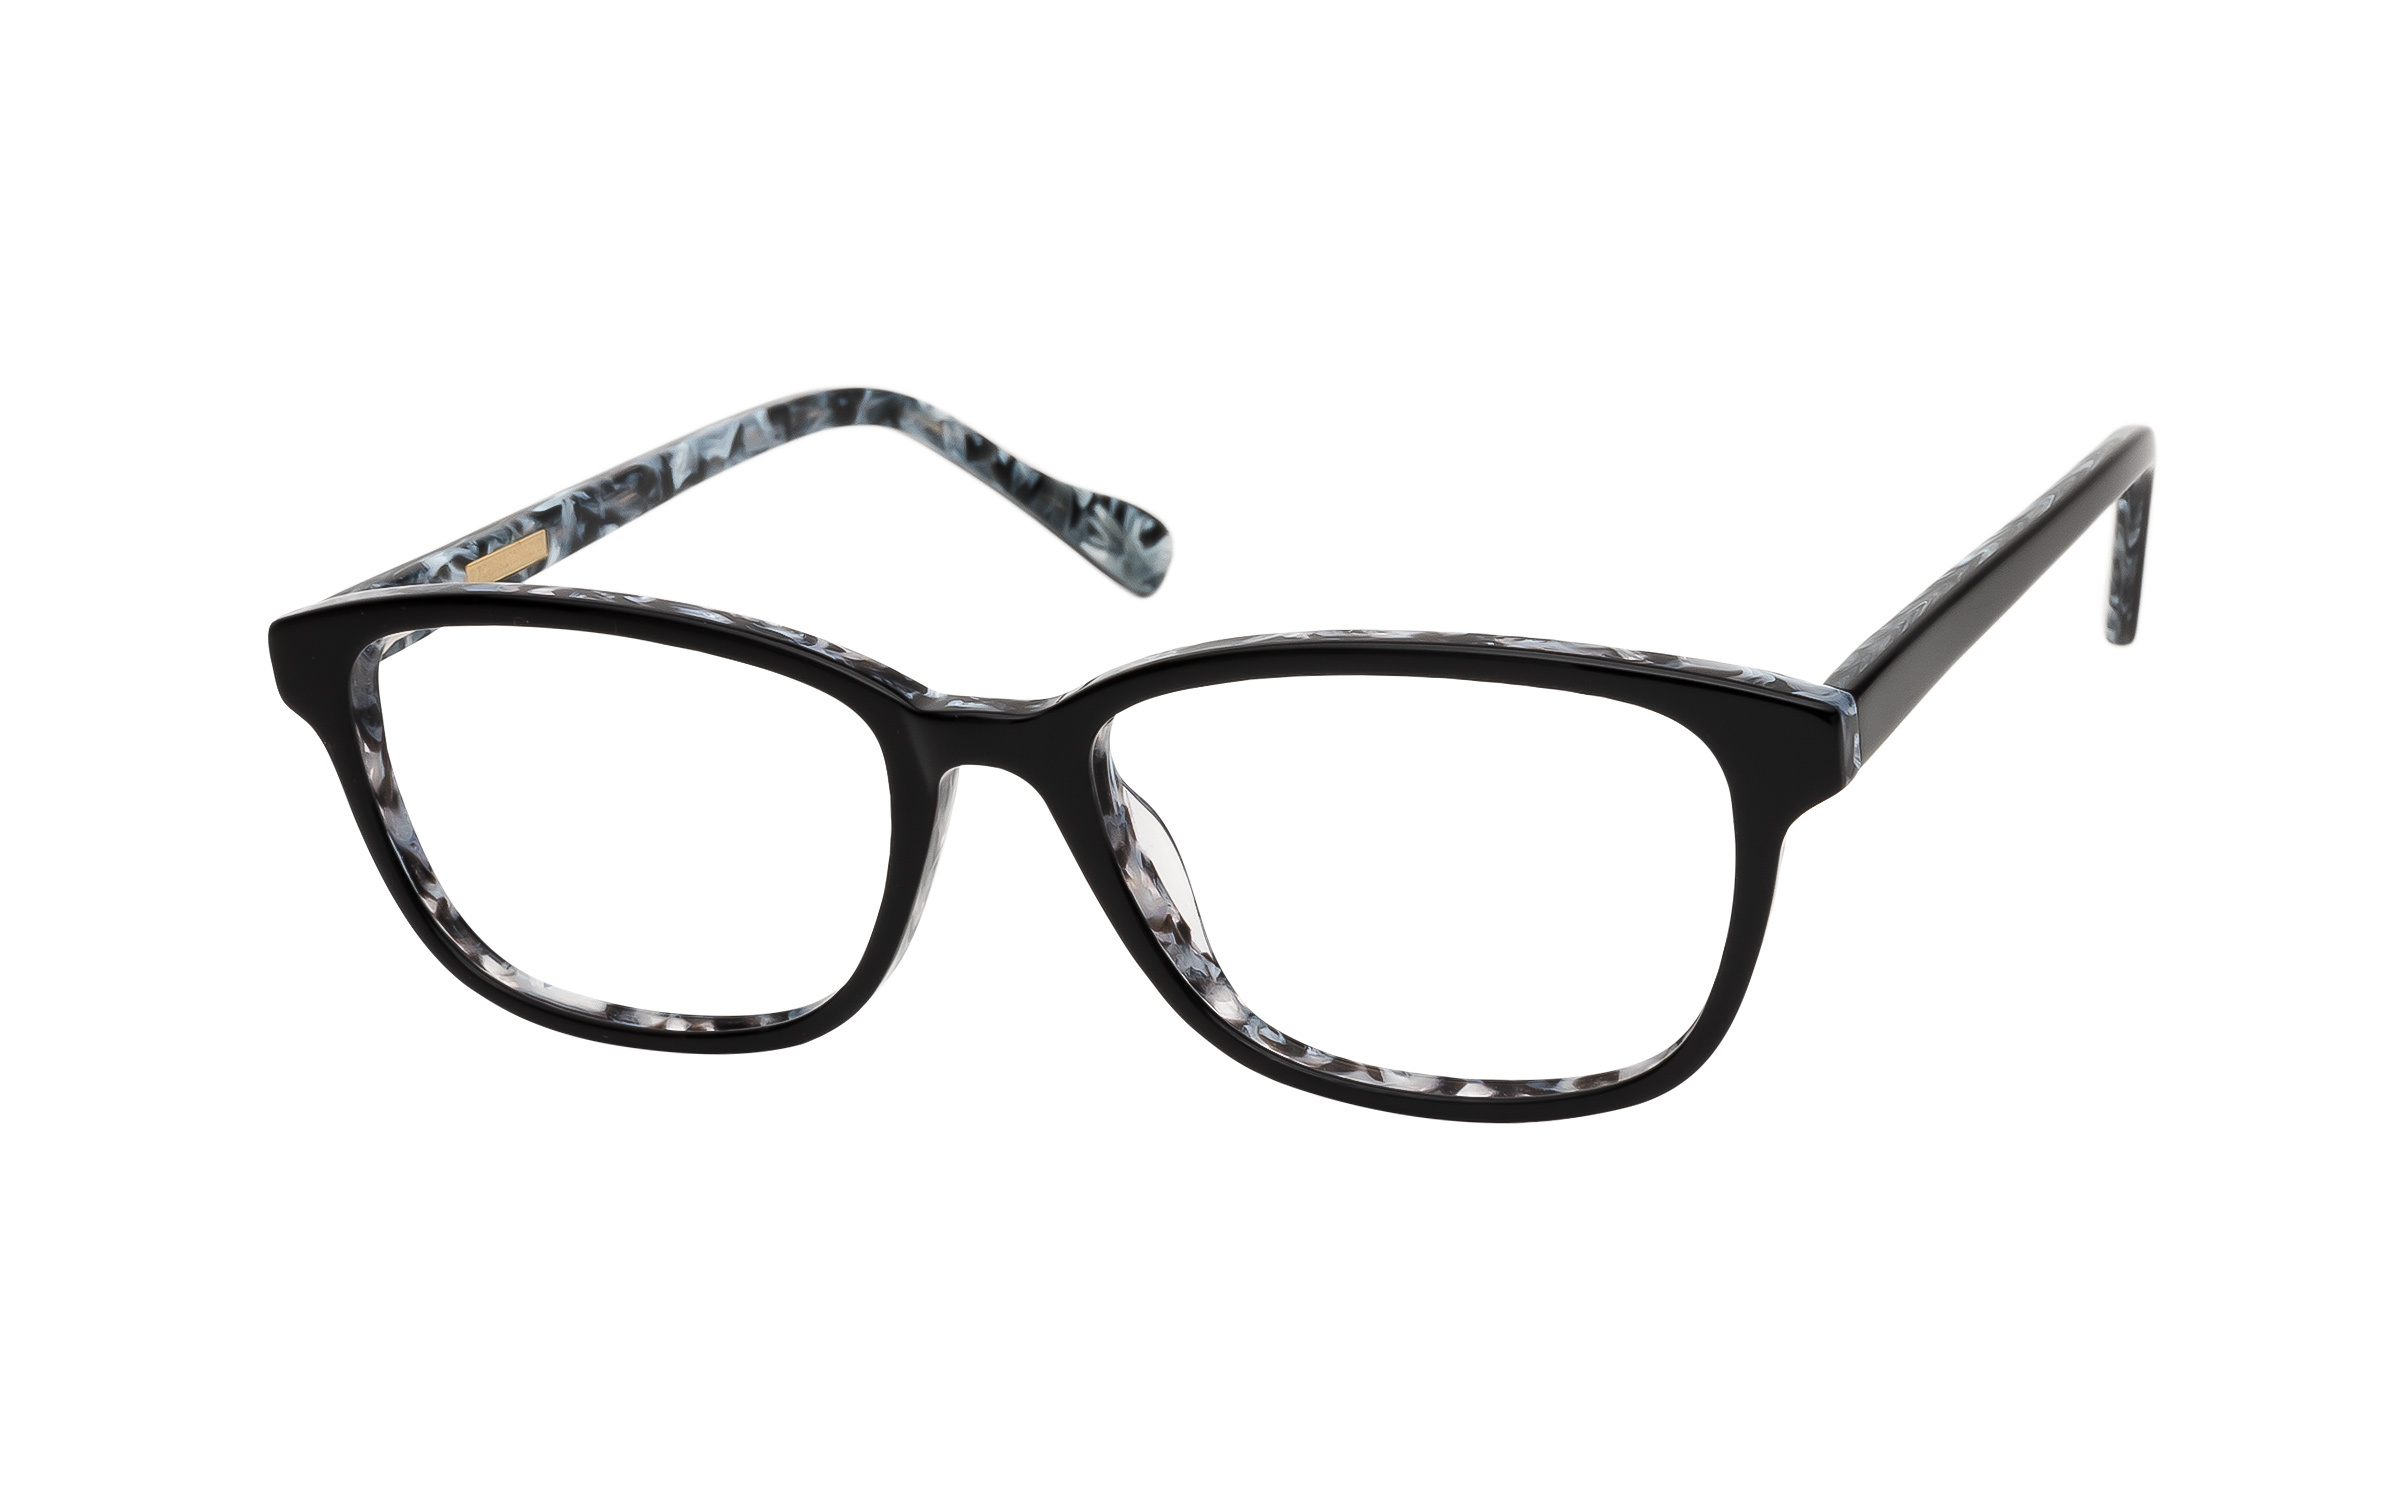 7 for All Mankind Glasses D-Frame Black Online Clearly